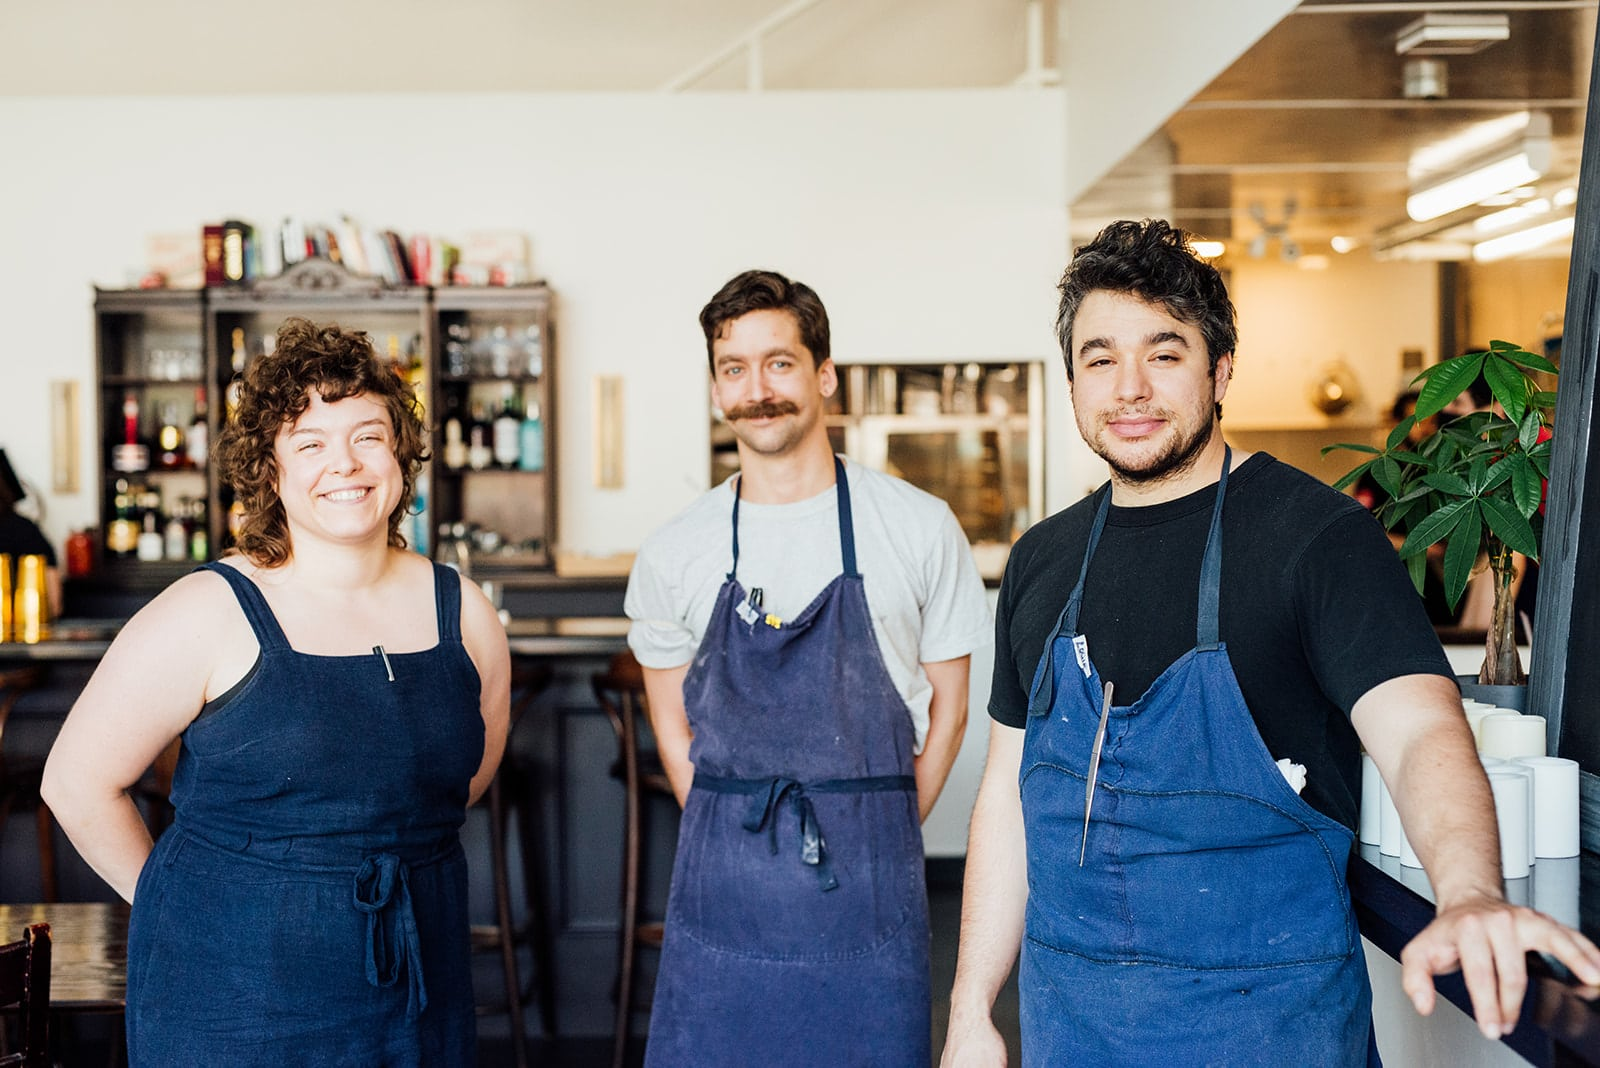 Owners of Bistro La Franquette